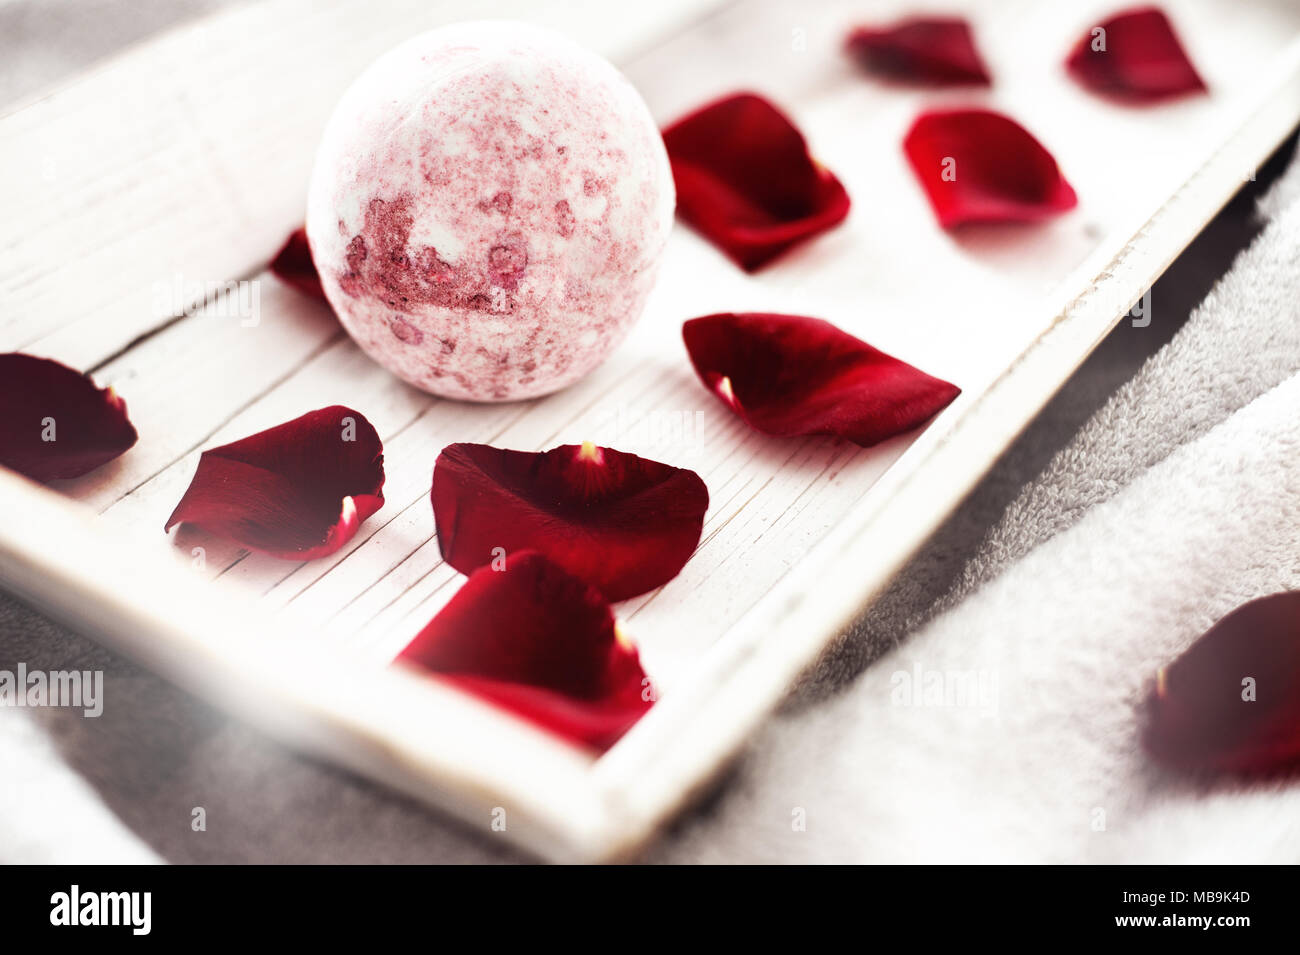 Bomb salt bath decorated with dried roses on a white background - Stock Image